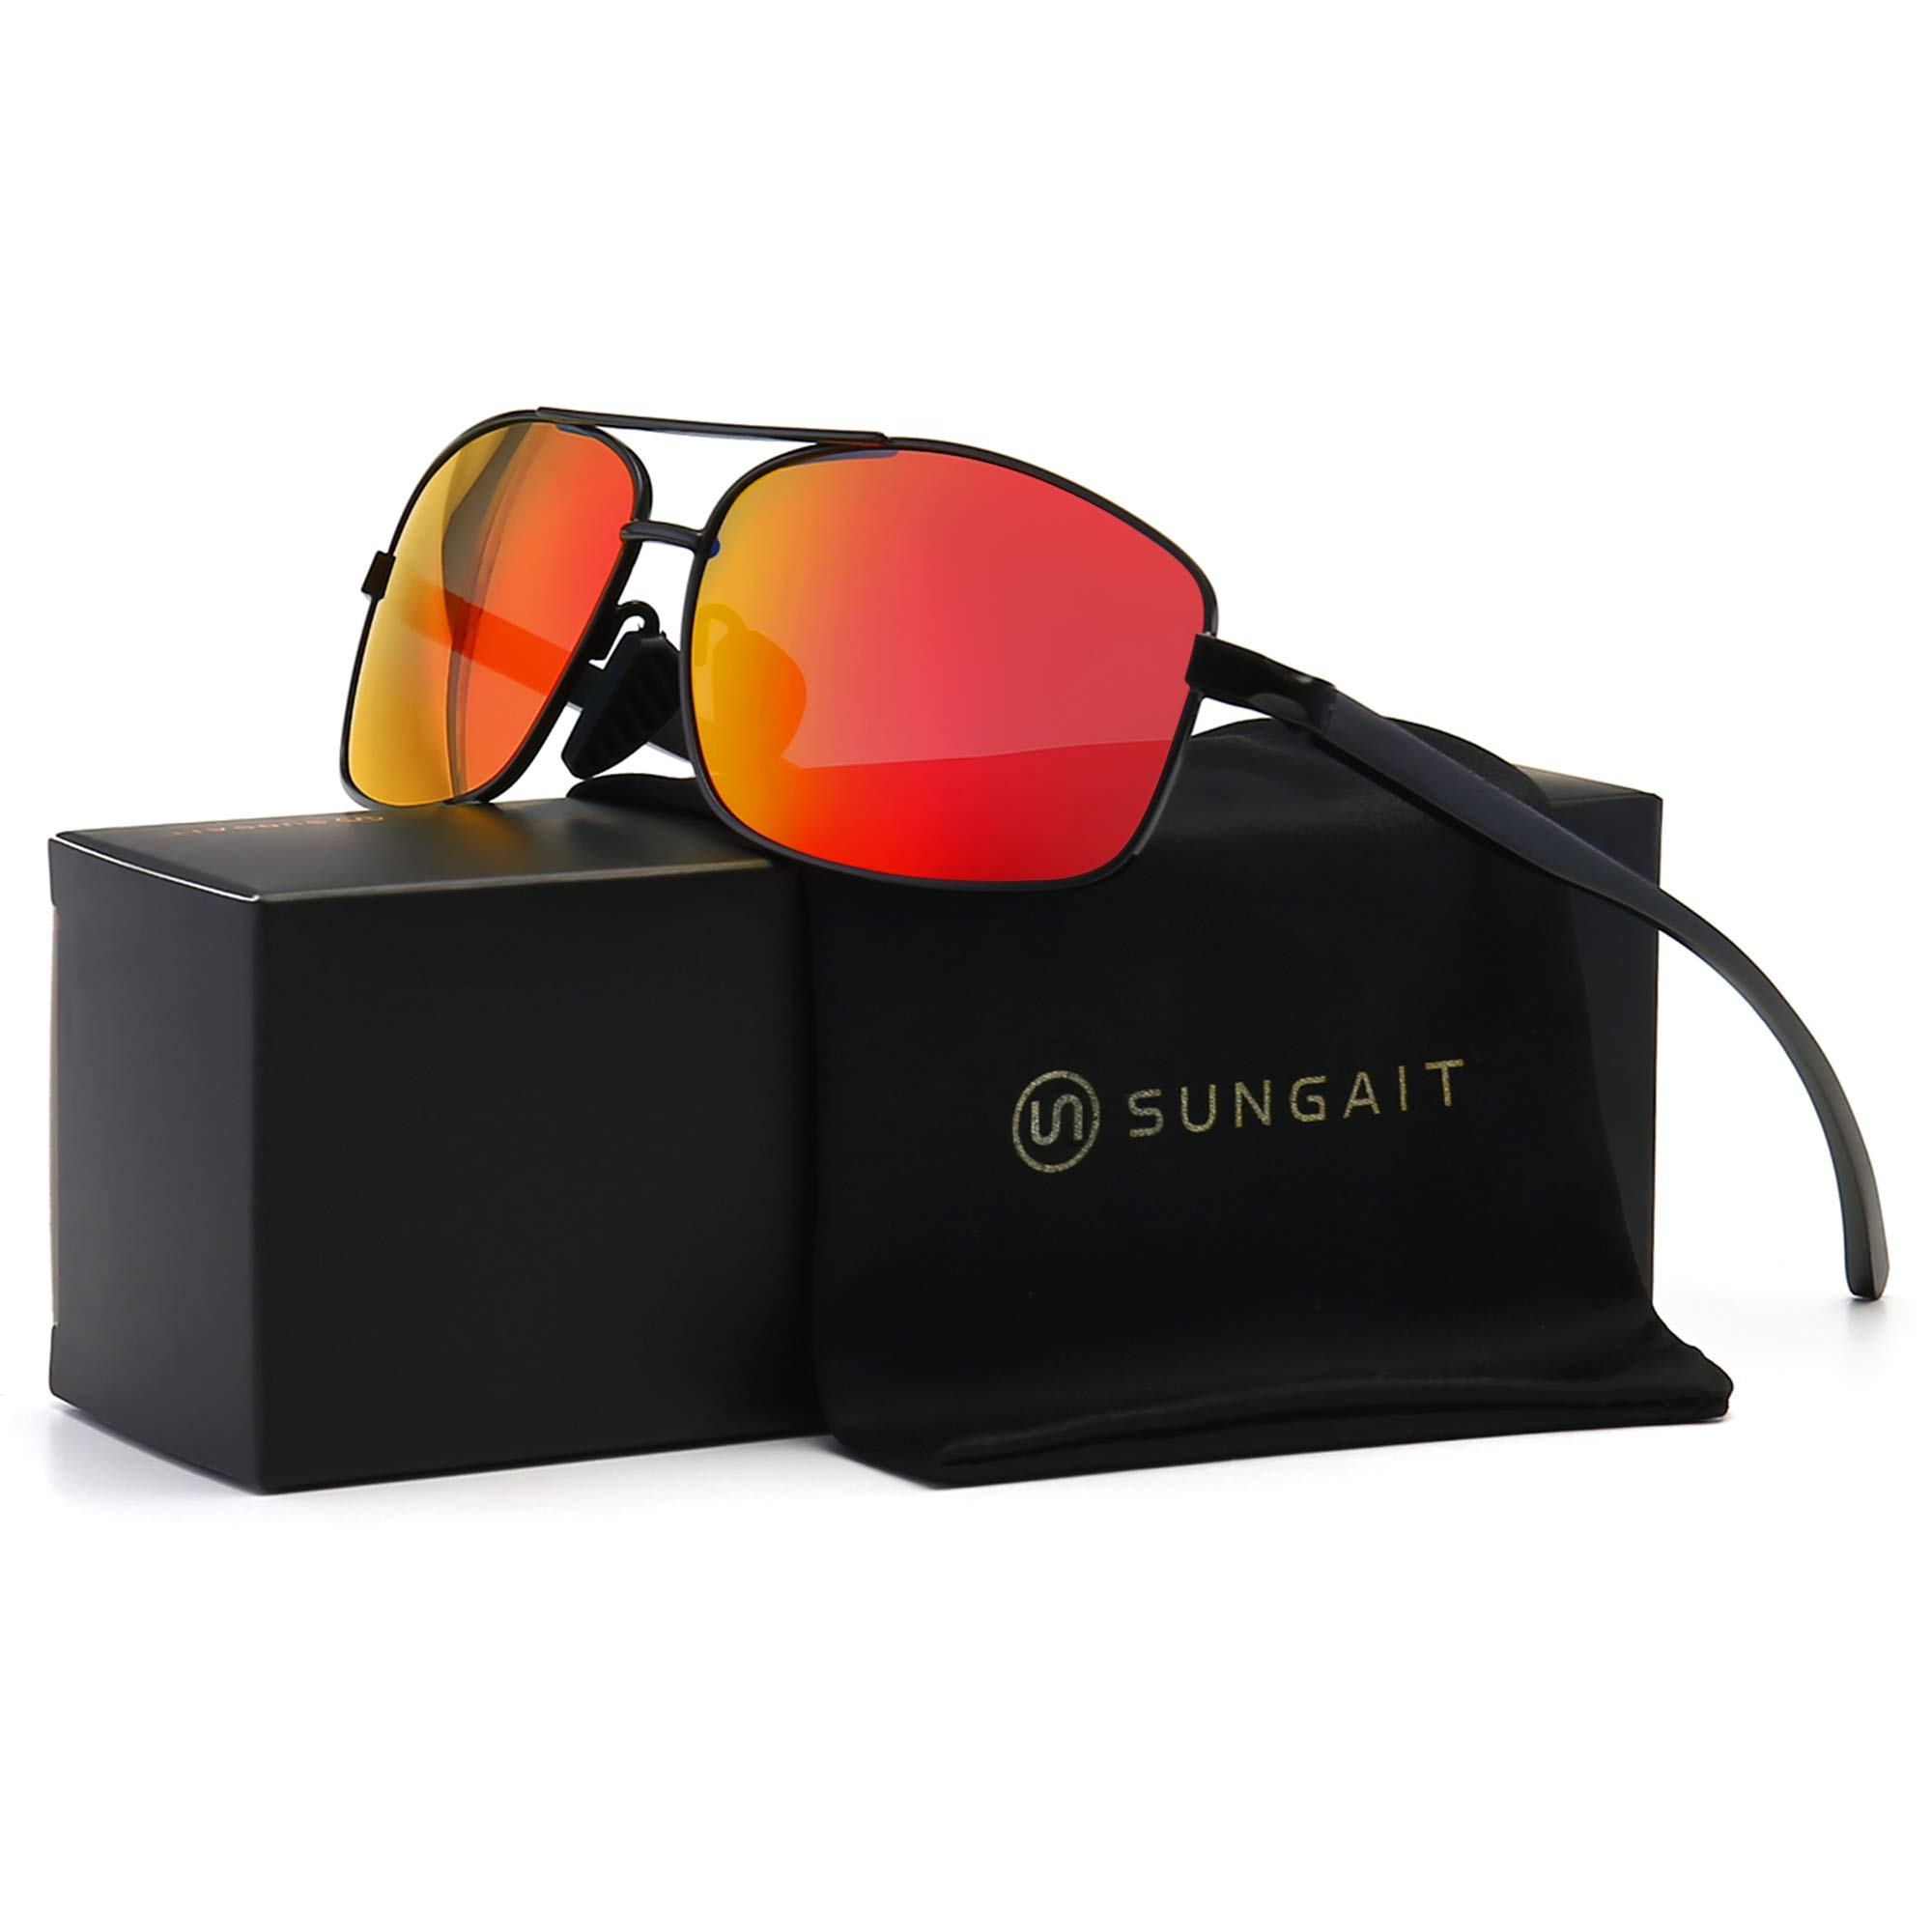 SUNGAIT Ultra Lightweight Rectangular Polarized Sunglasses UV400 Protection (Black Frame Red Mirror Lens, 62) Metal Frame 2458 HEKHO by SUNGAIT